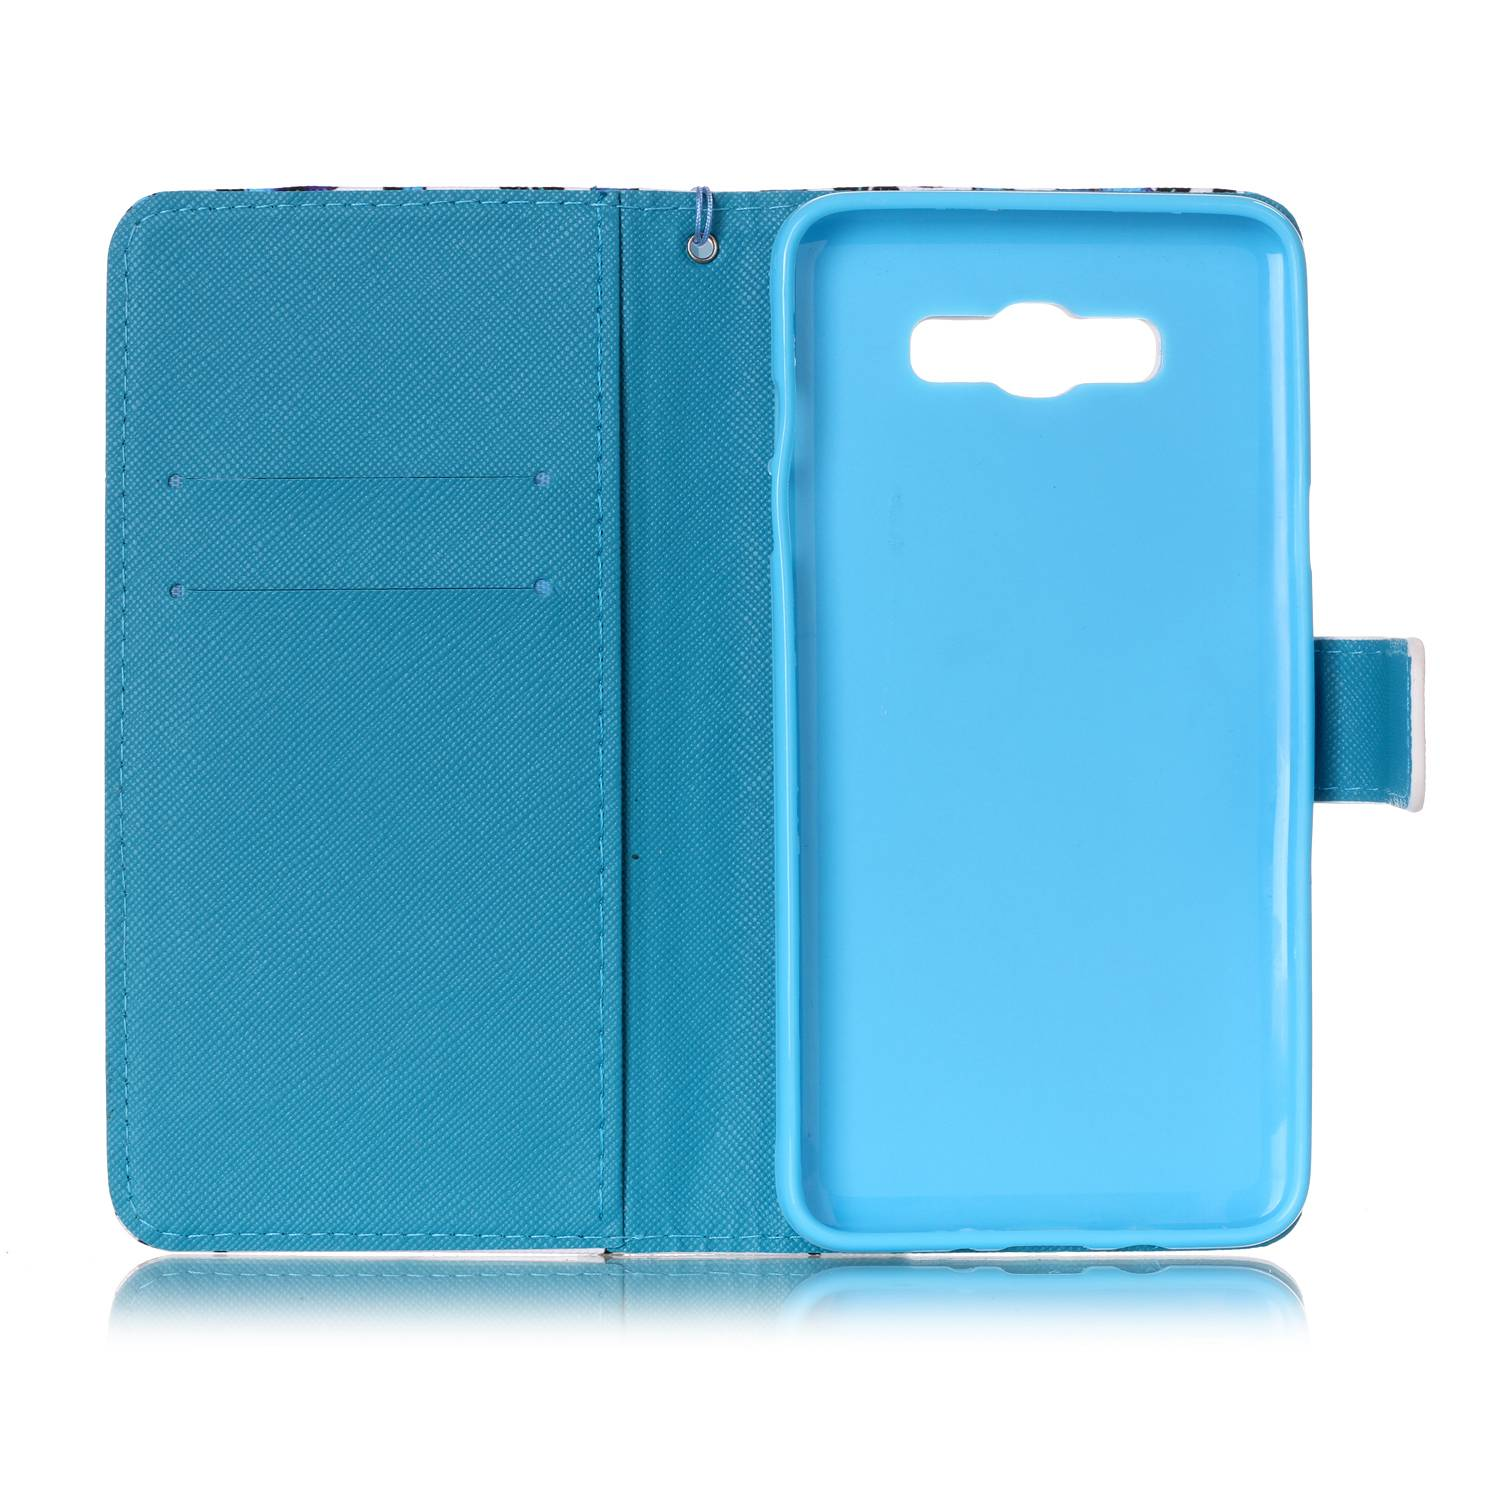 Patterned-Strap-Flip-Leather-Wallet-Stand-Case-Cover-For-Samsung-S5-S6-S7-Edge